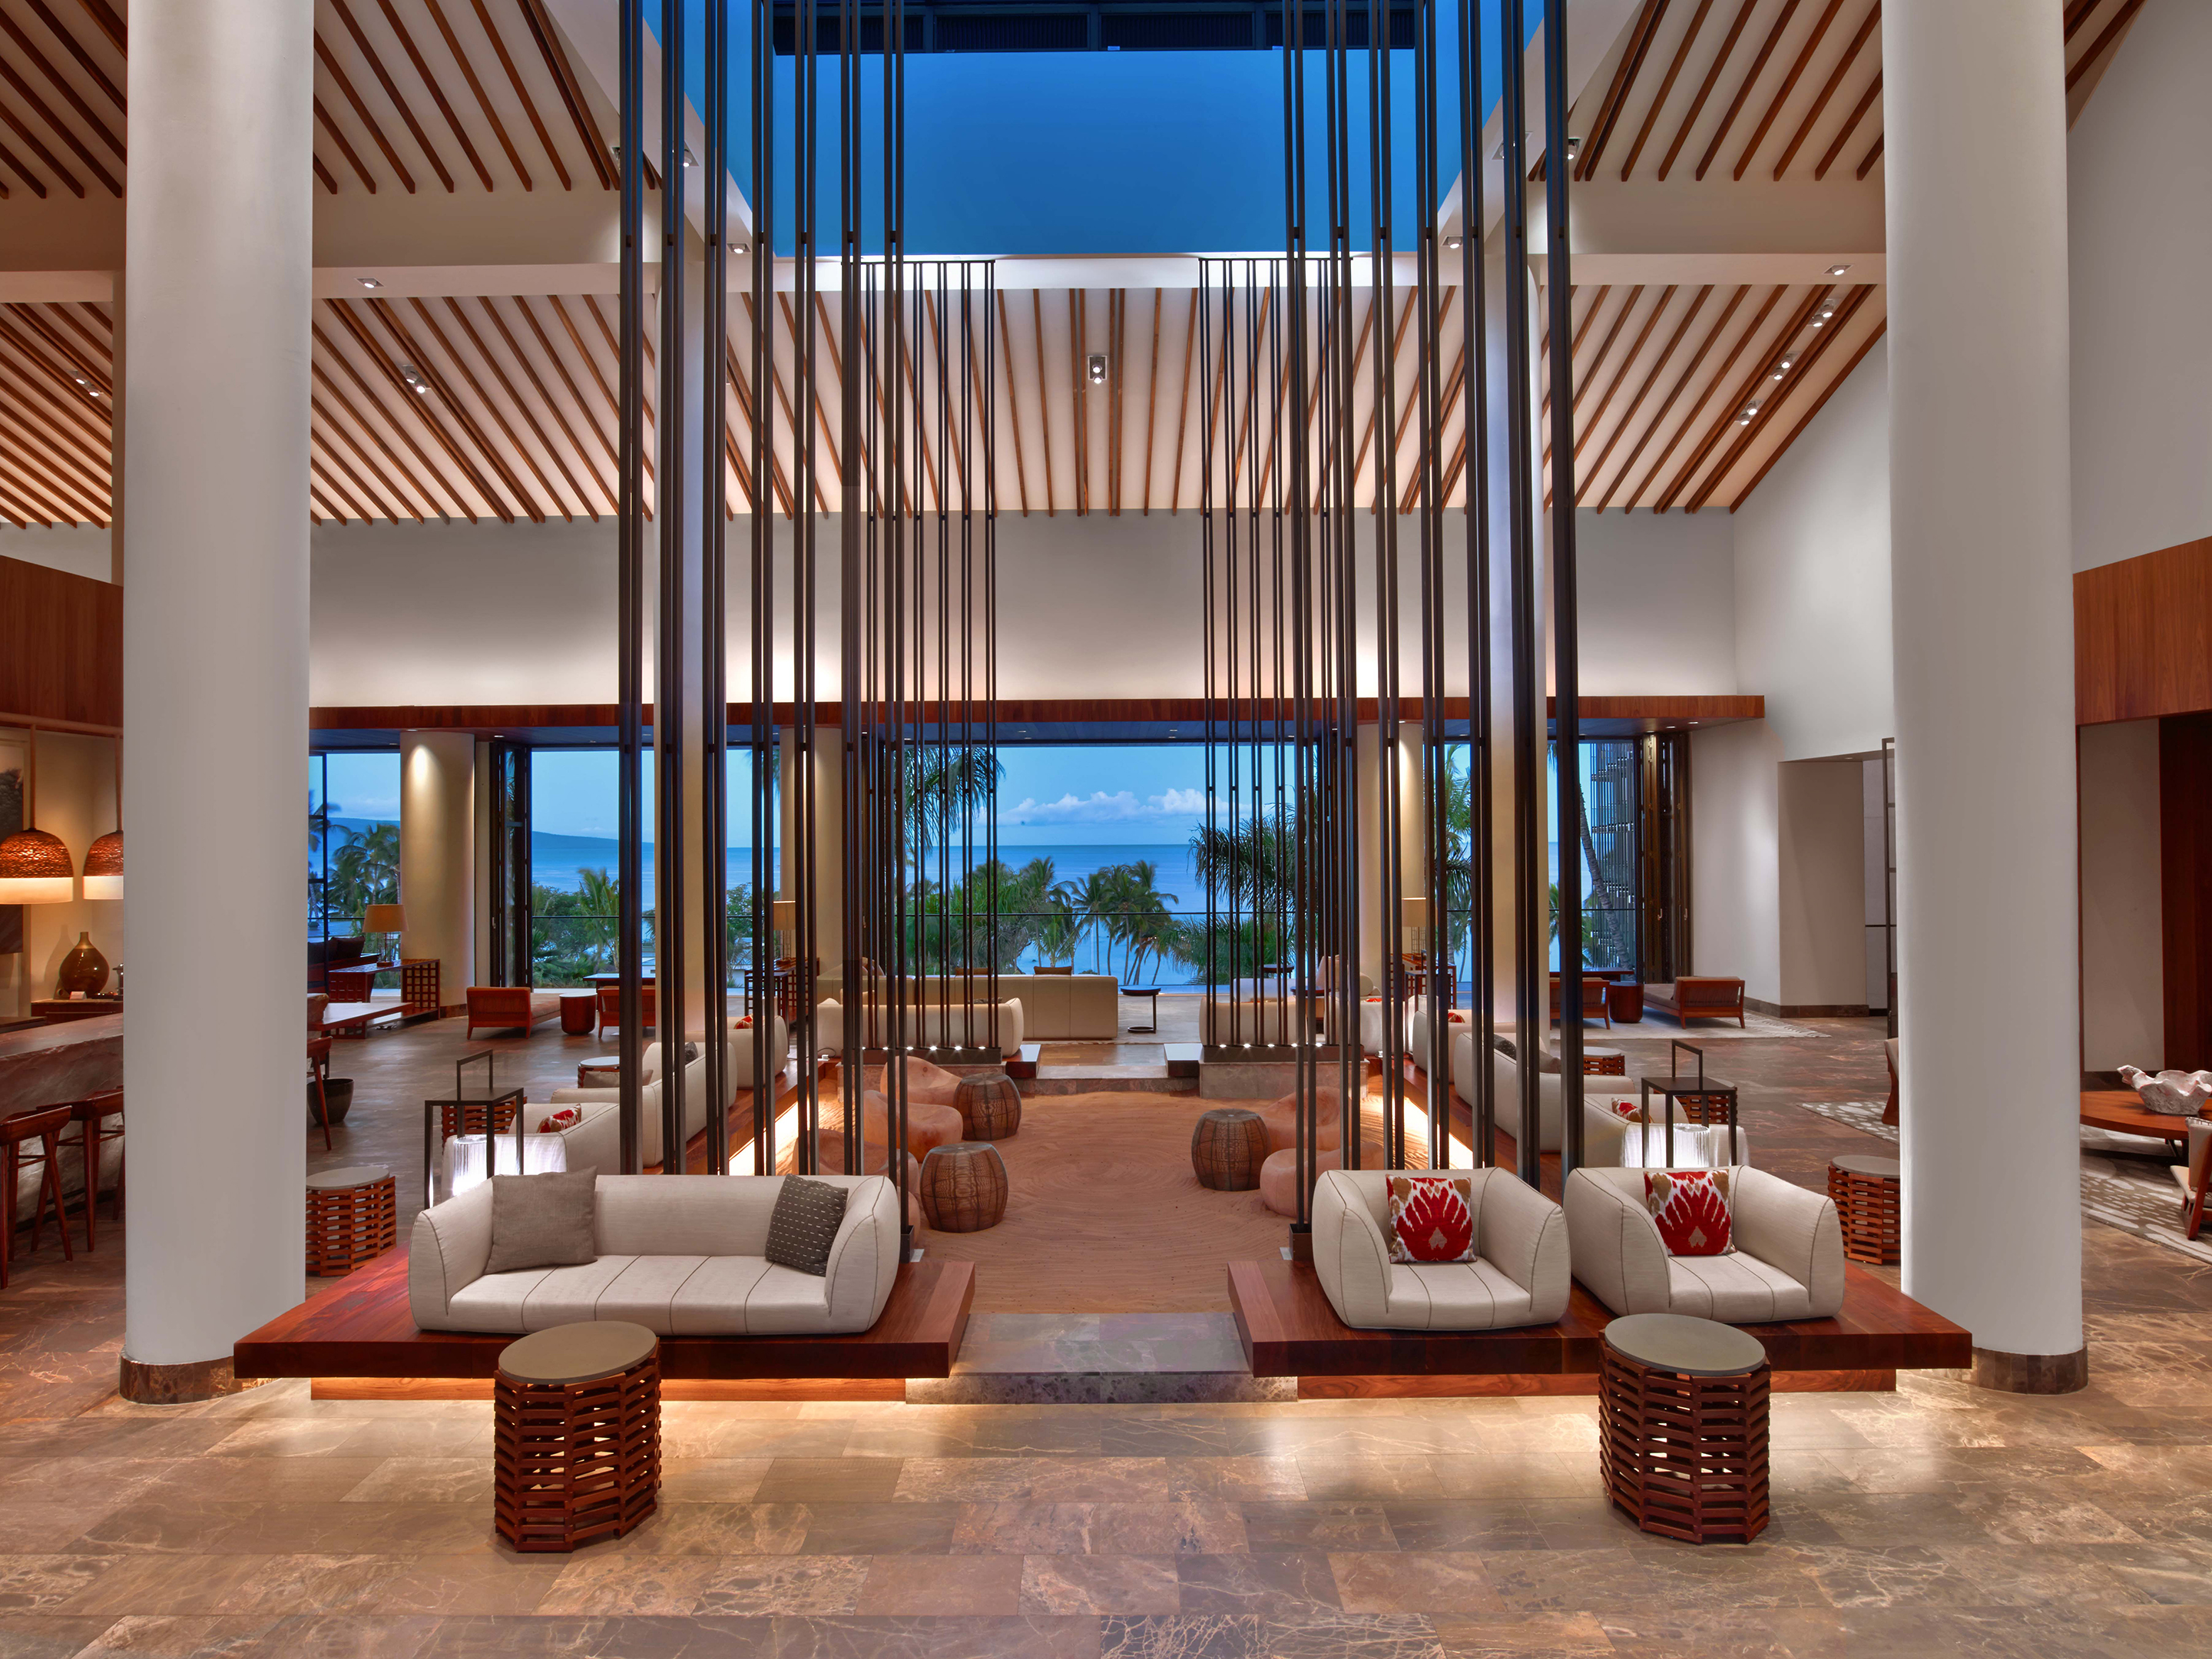 Andaz Maui at Wailea Receives 2018 Po'okela Outstanding Property Award